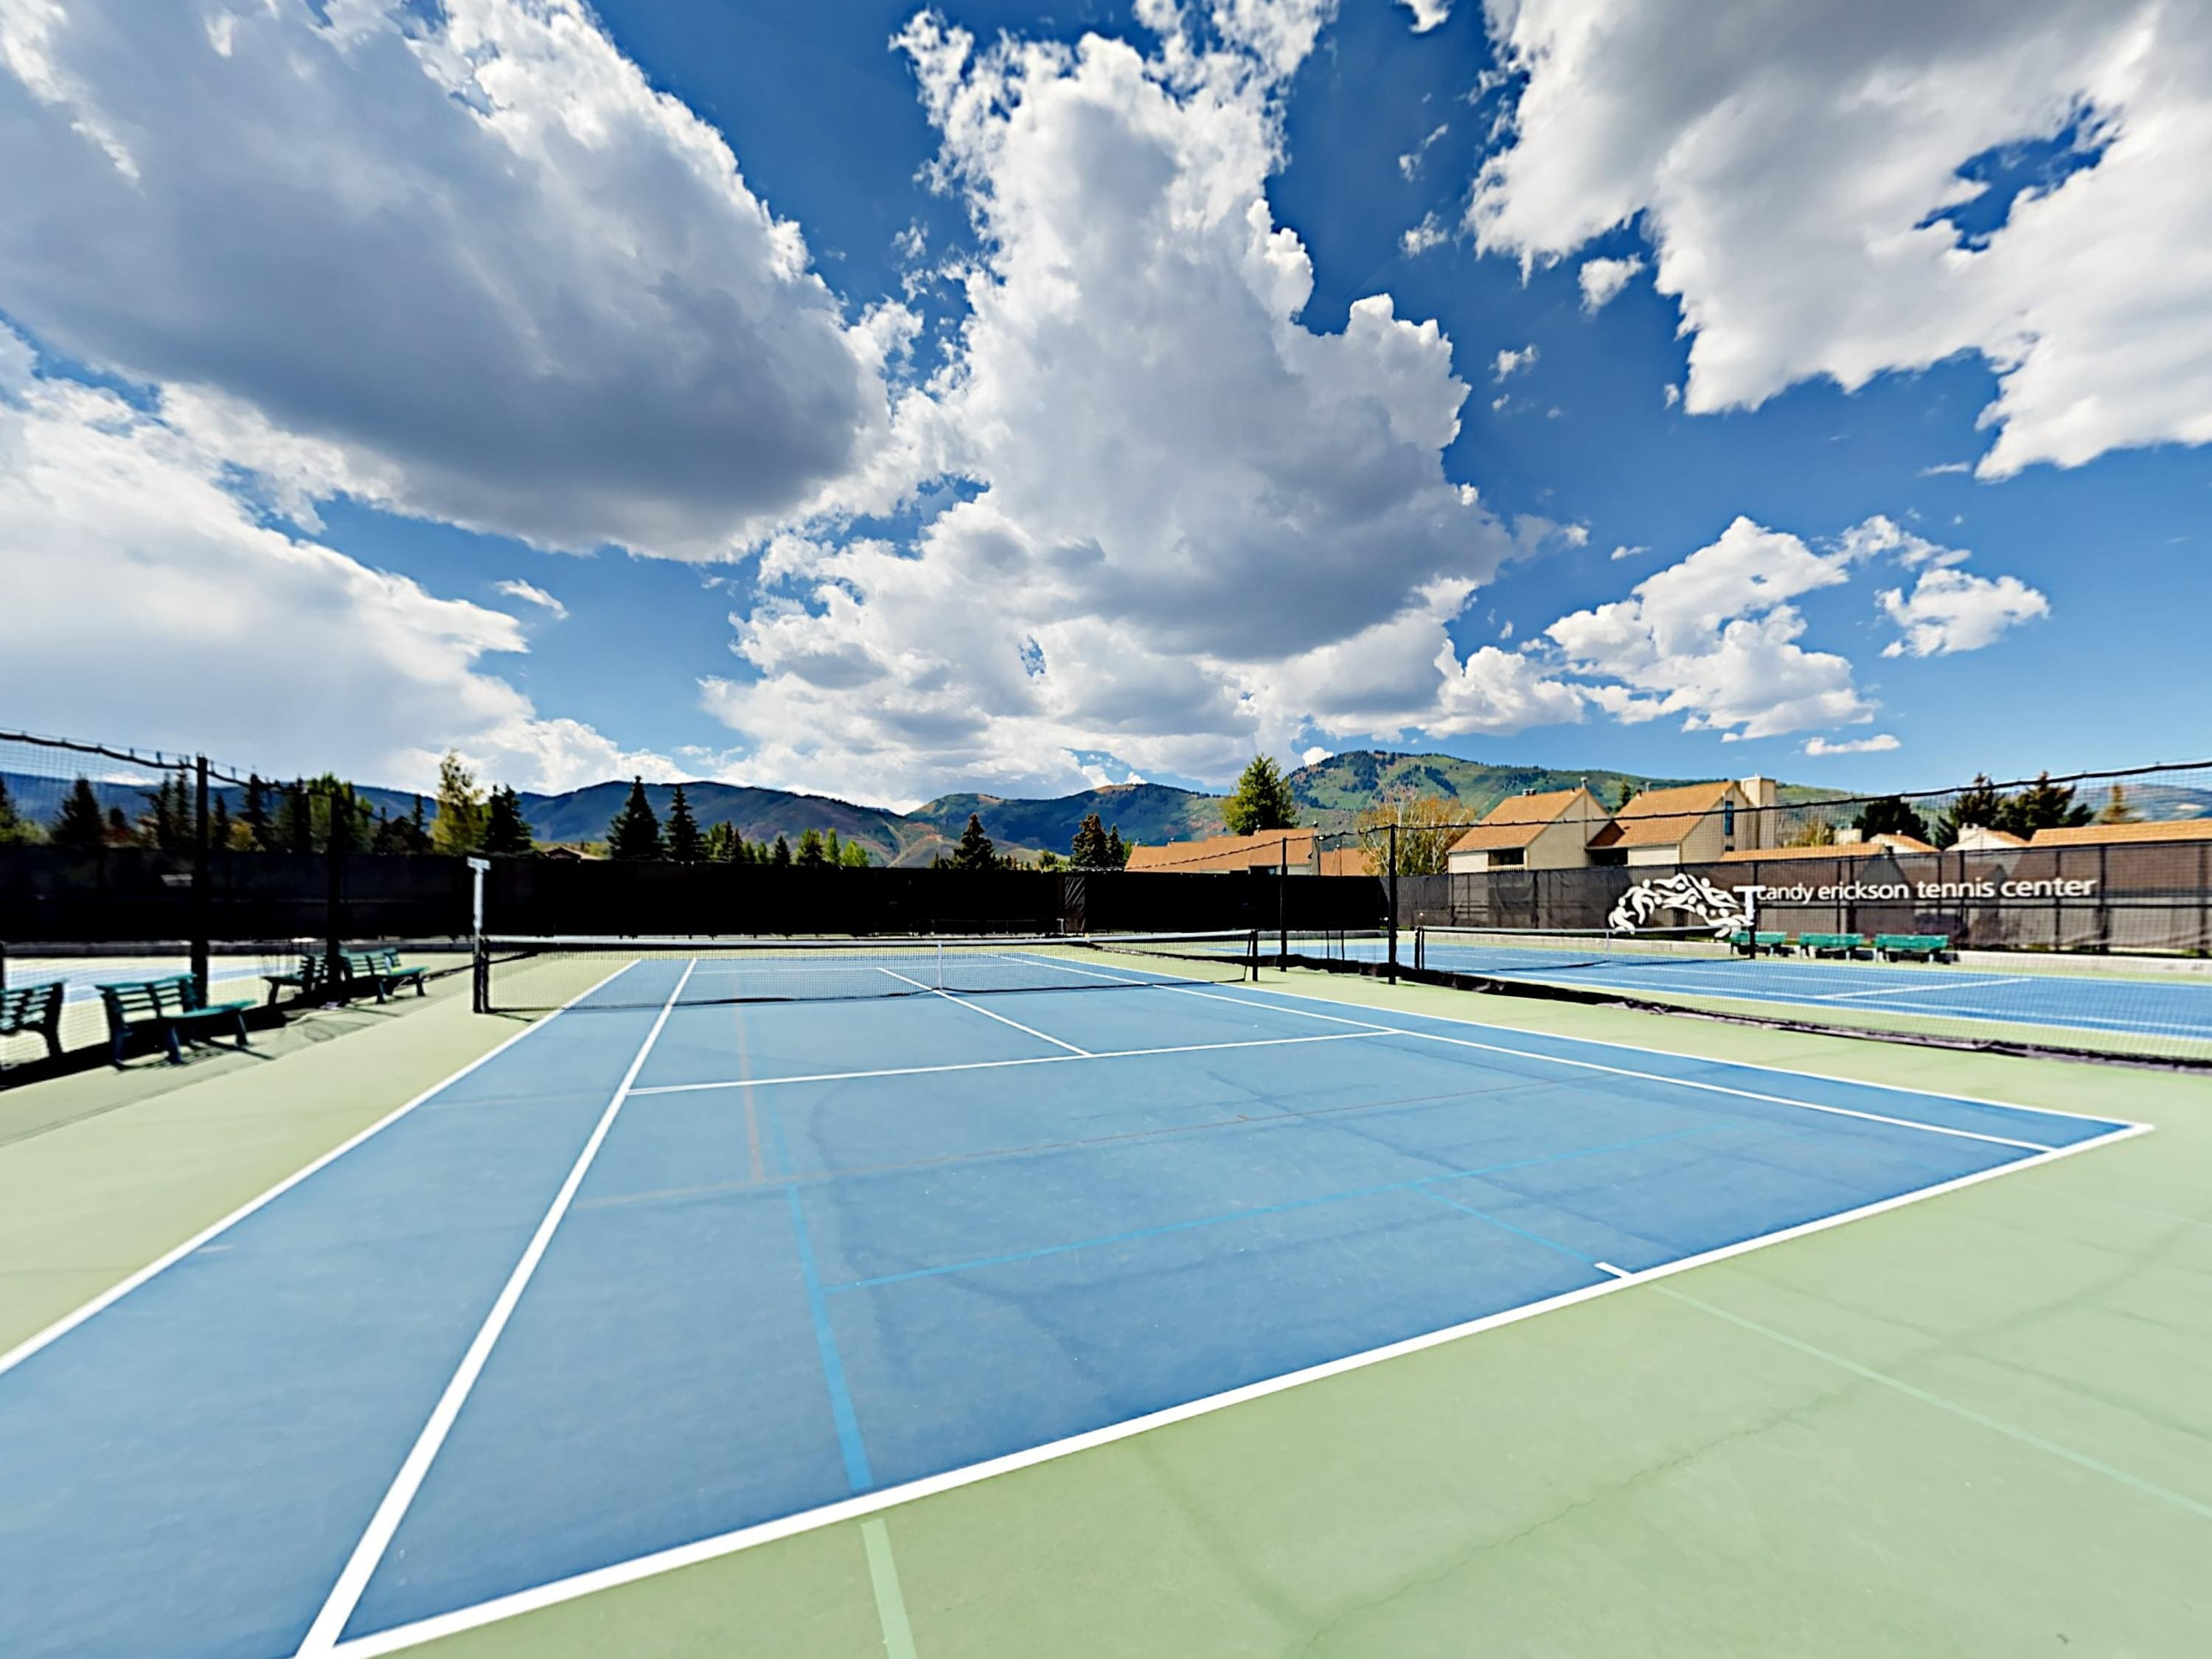 Play a friendly round of tennis at the rec center's courts.